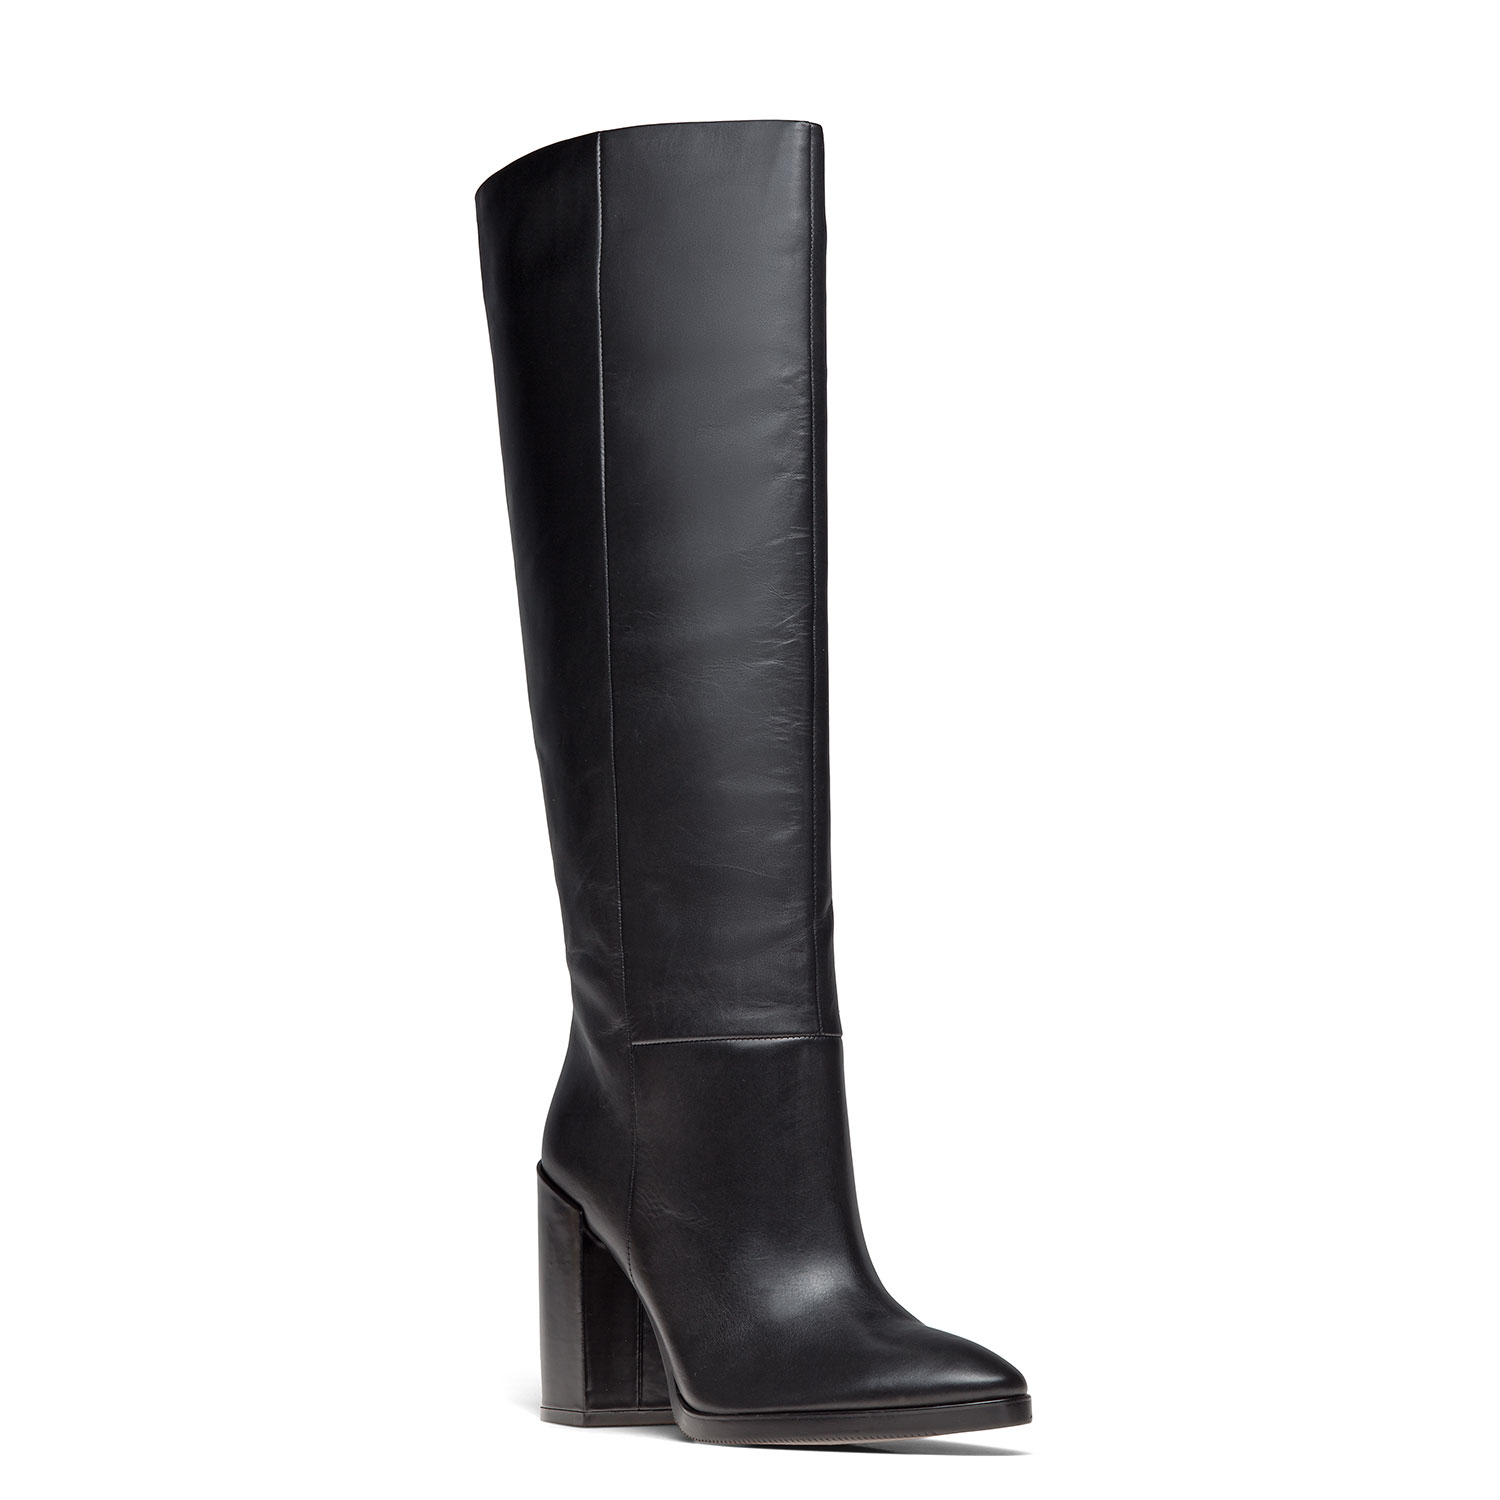 Women's cold weather high boots CARLO PAZOLINI FL-DEY3-1